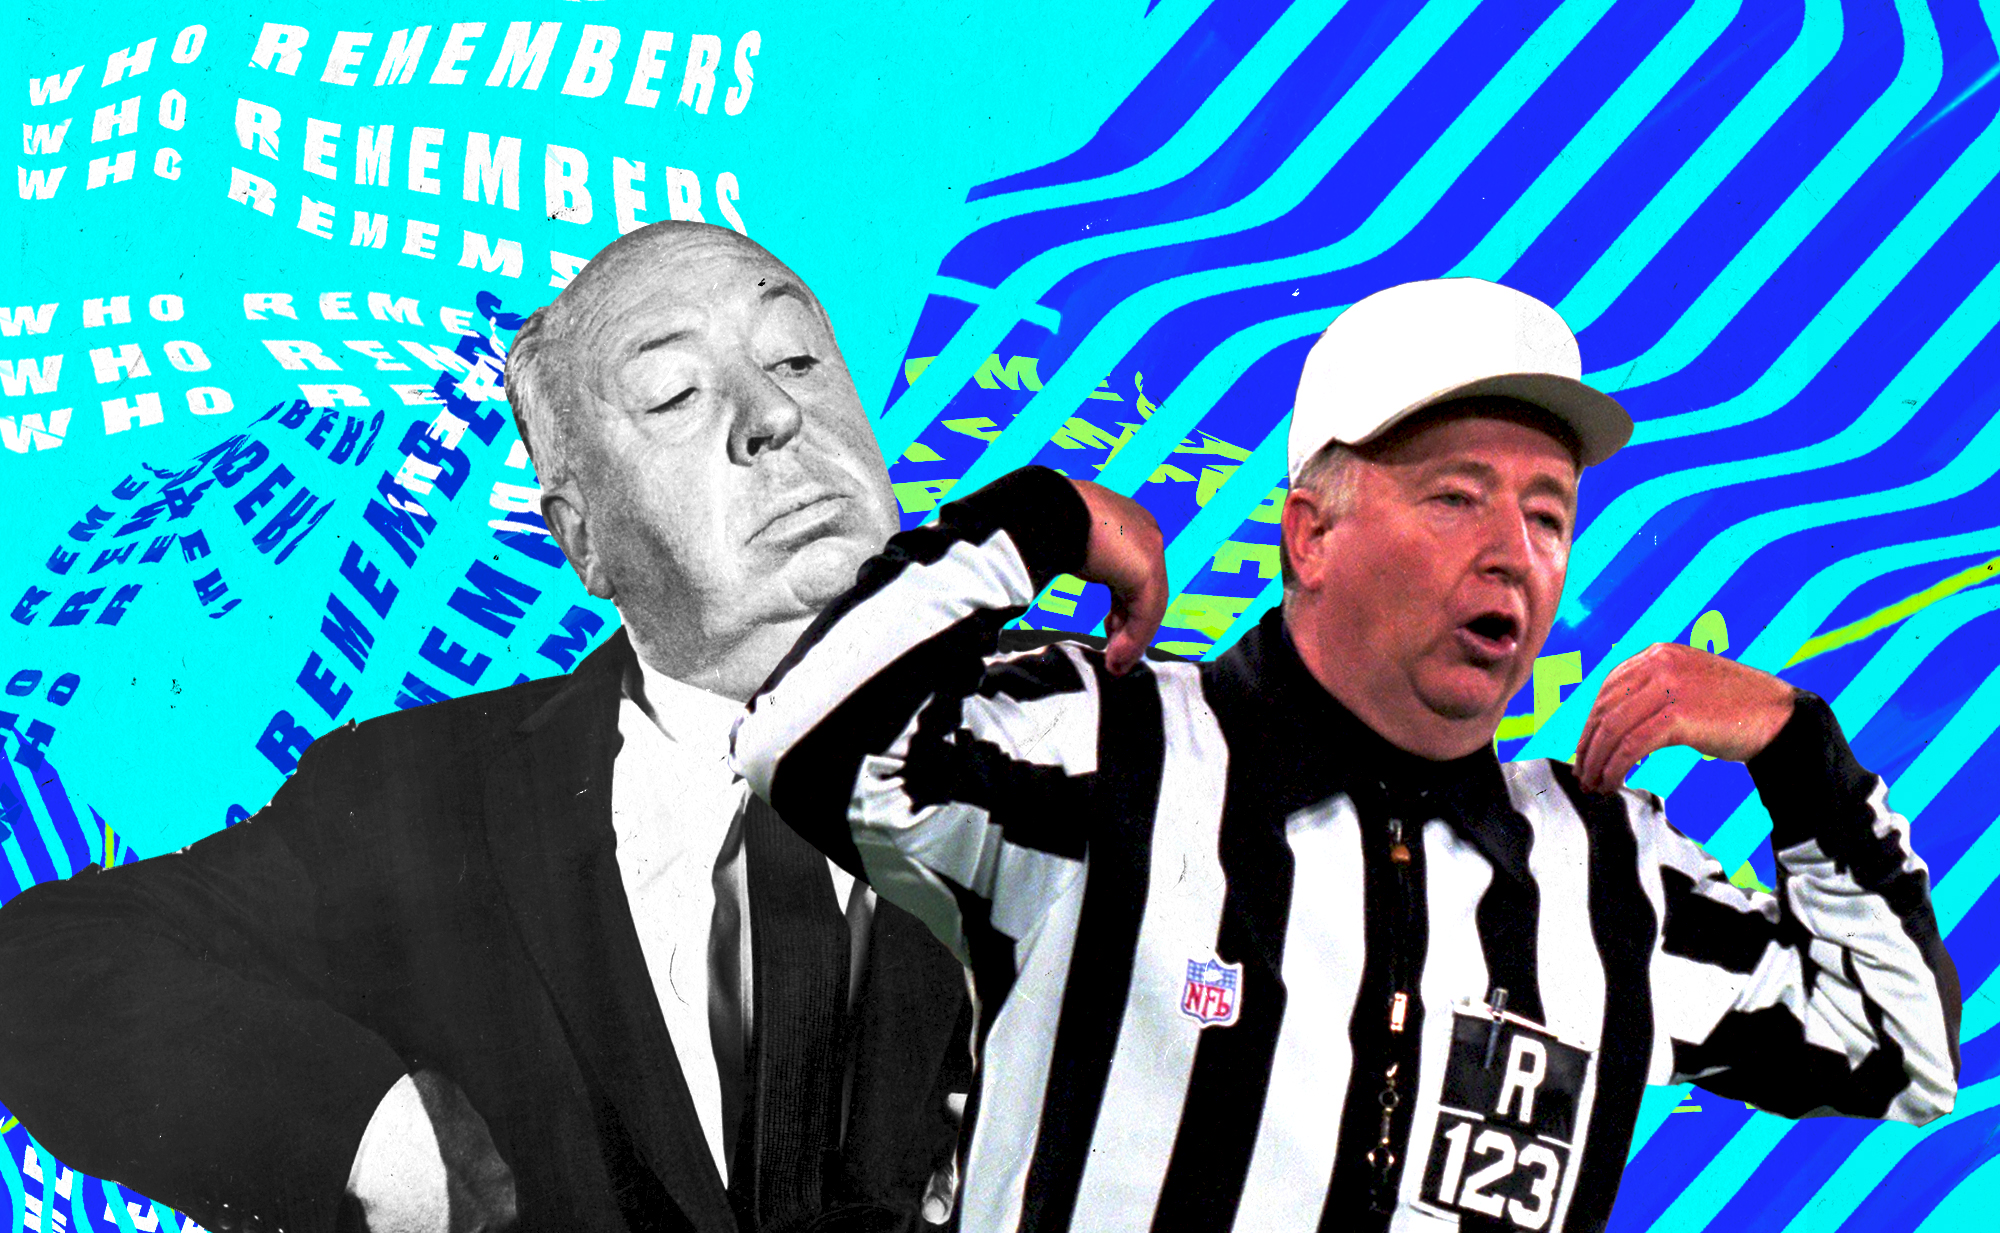 Dennis Miller's best 'Monday Night Football' moment — by far — was when he called a ref Alfred Hitchcock